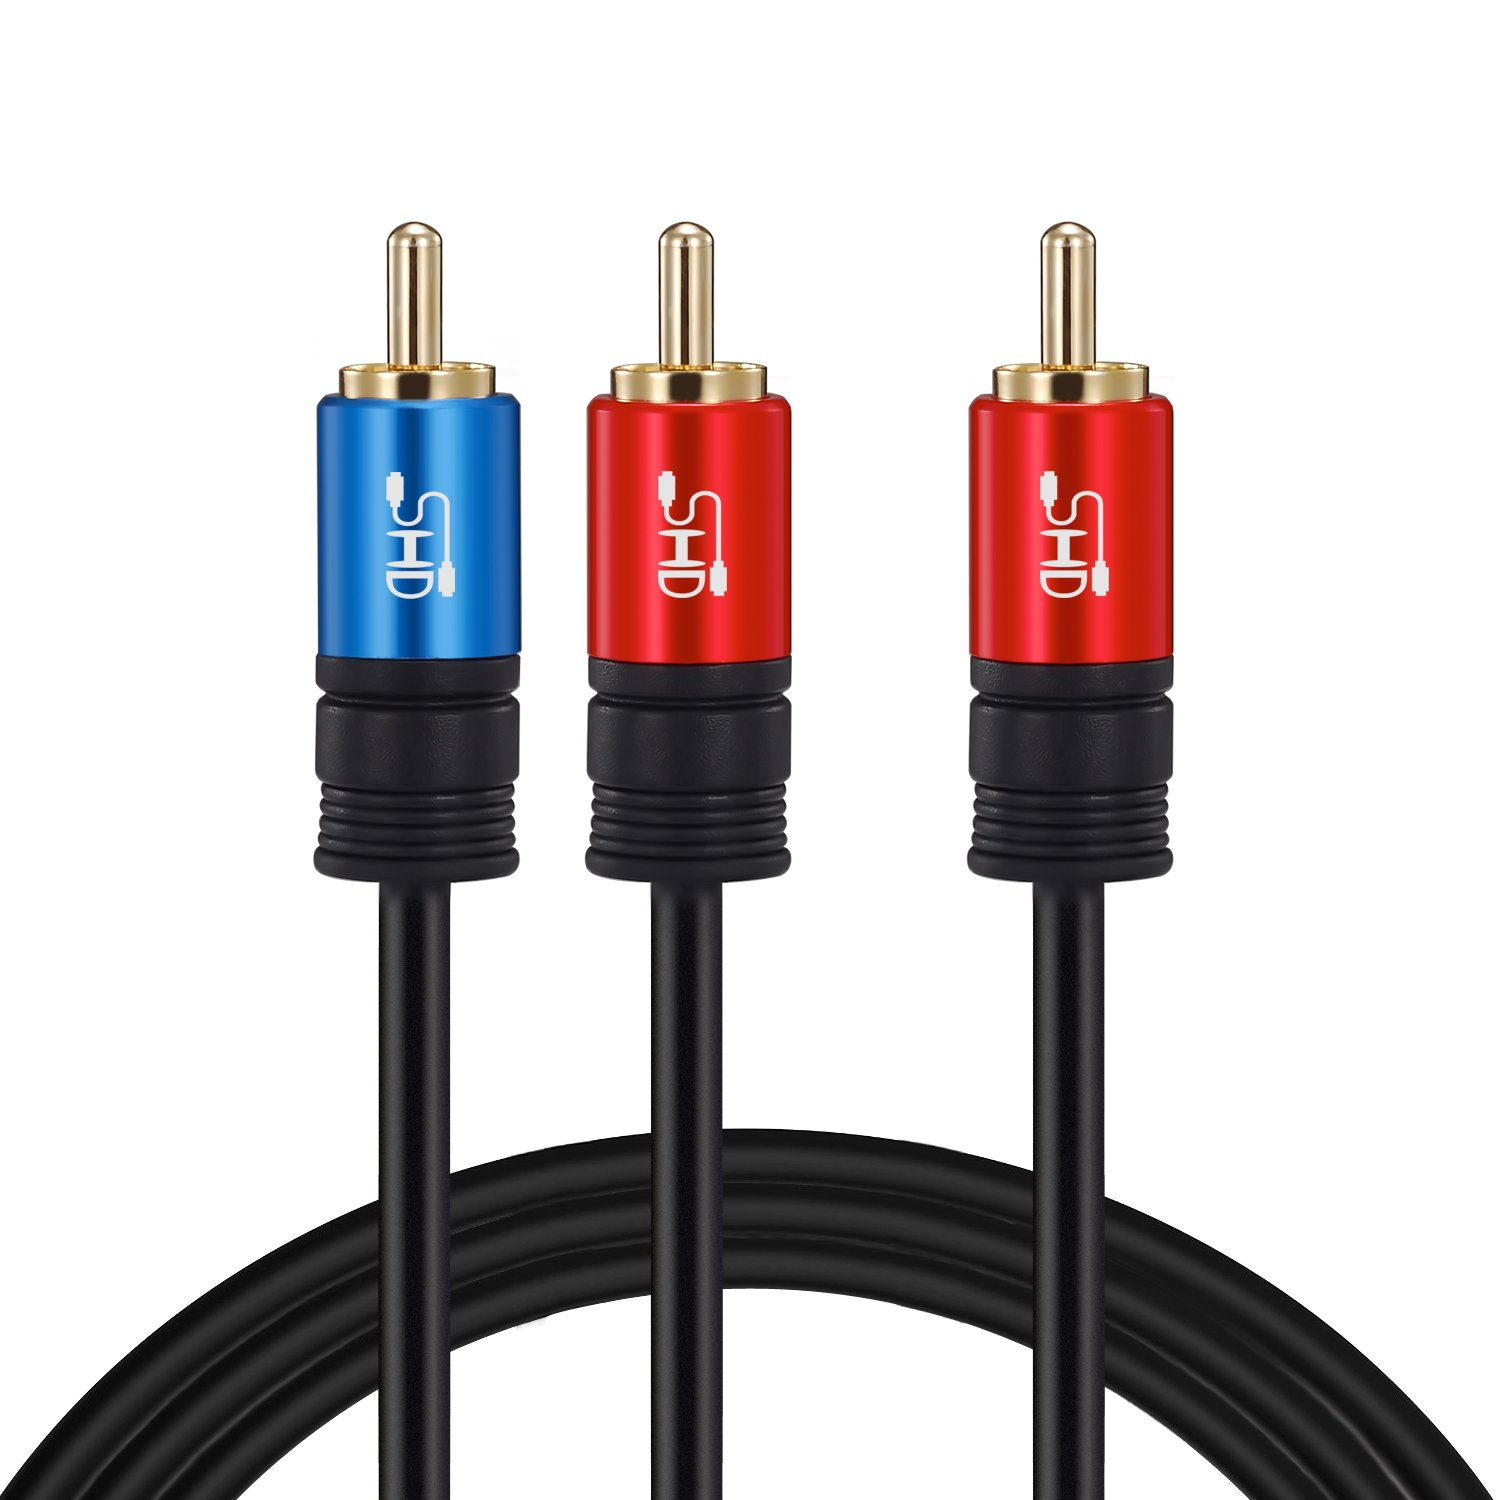 SHD RCA to 2RCA Subwoofer Cable Audio Cable 2RCA to 1RCA Bi-Directional RCA Y Adapter Premium Sound Quality Dual Shielded with Gold Plated Connectors-30Feet by SHD